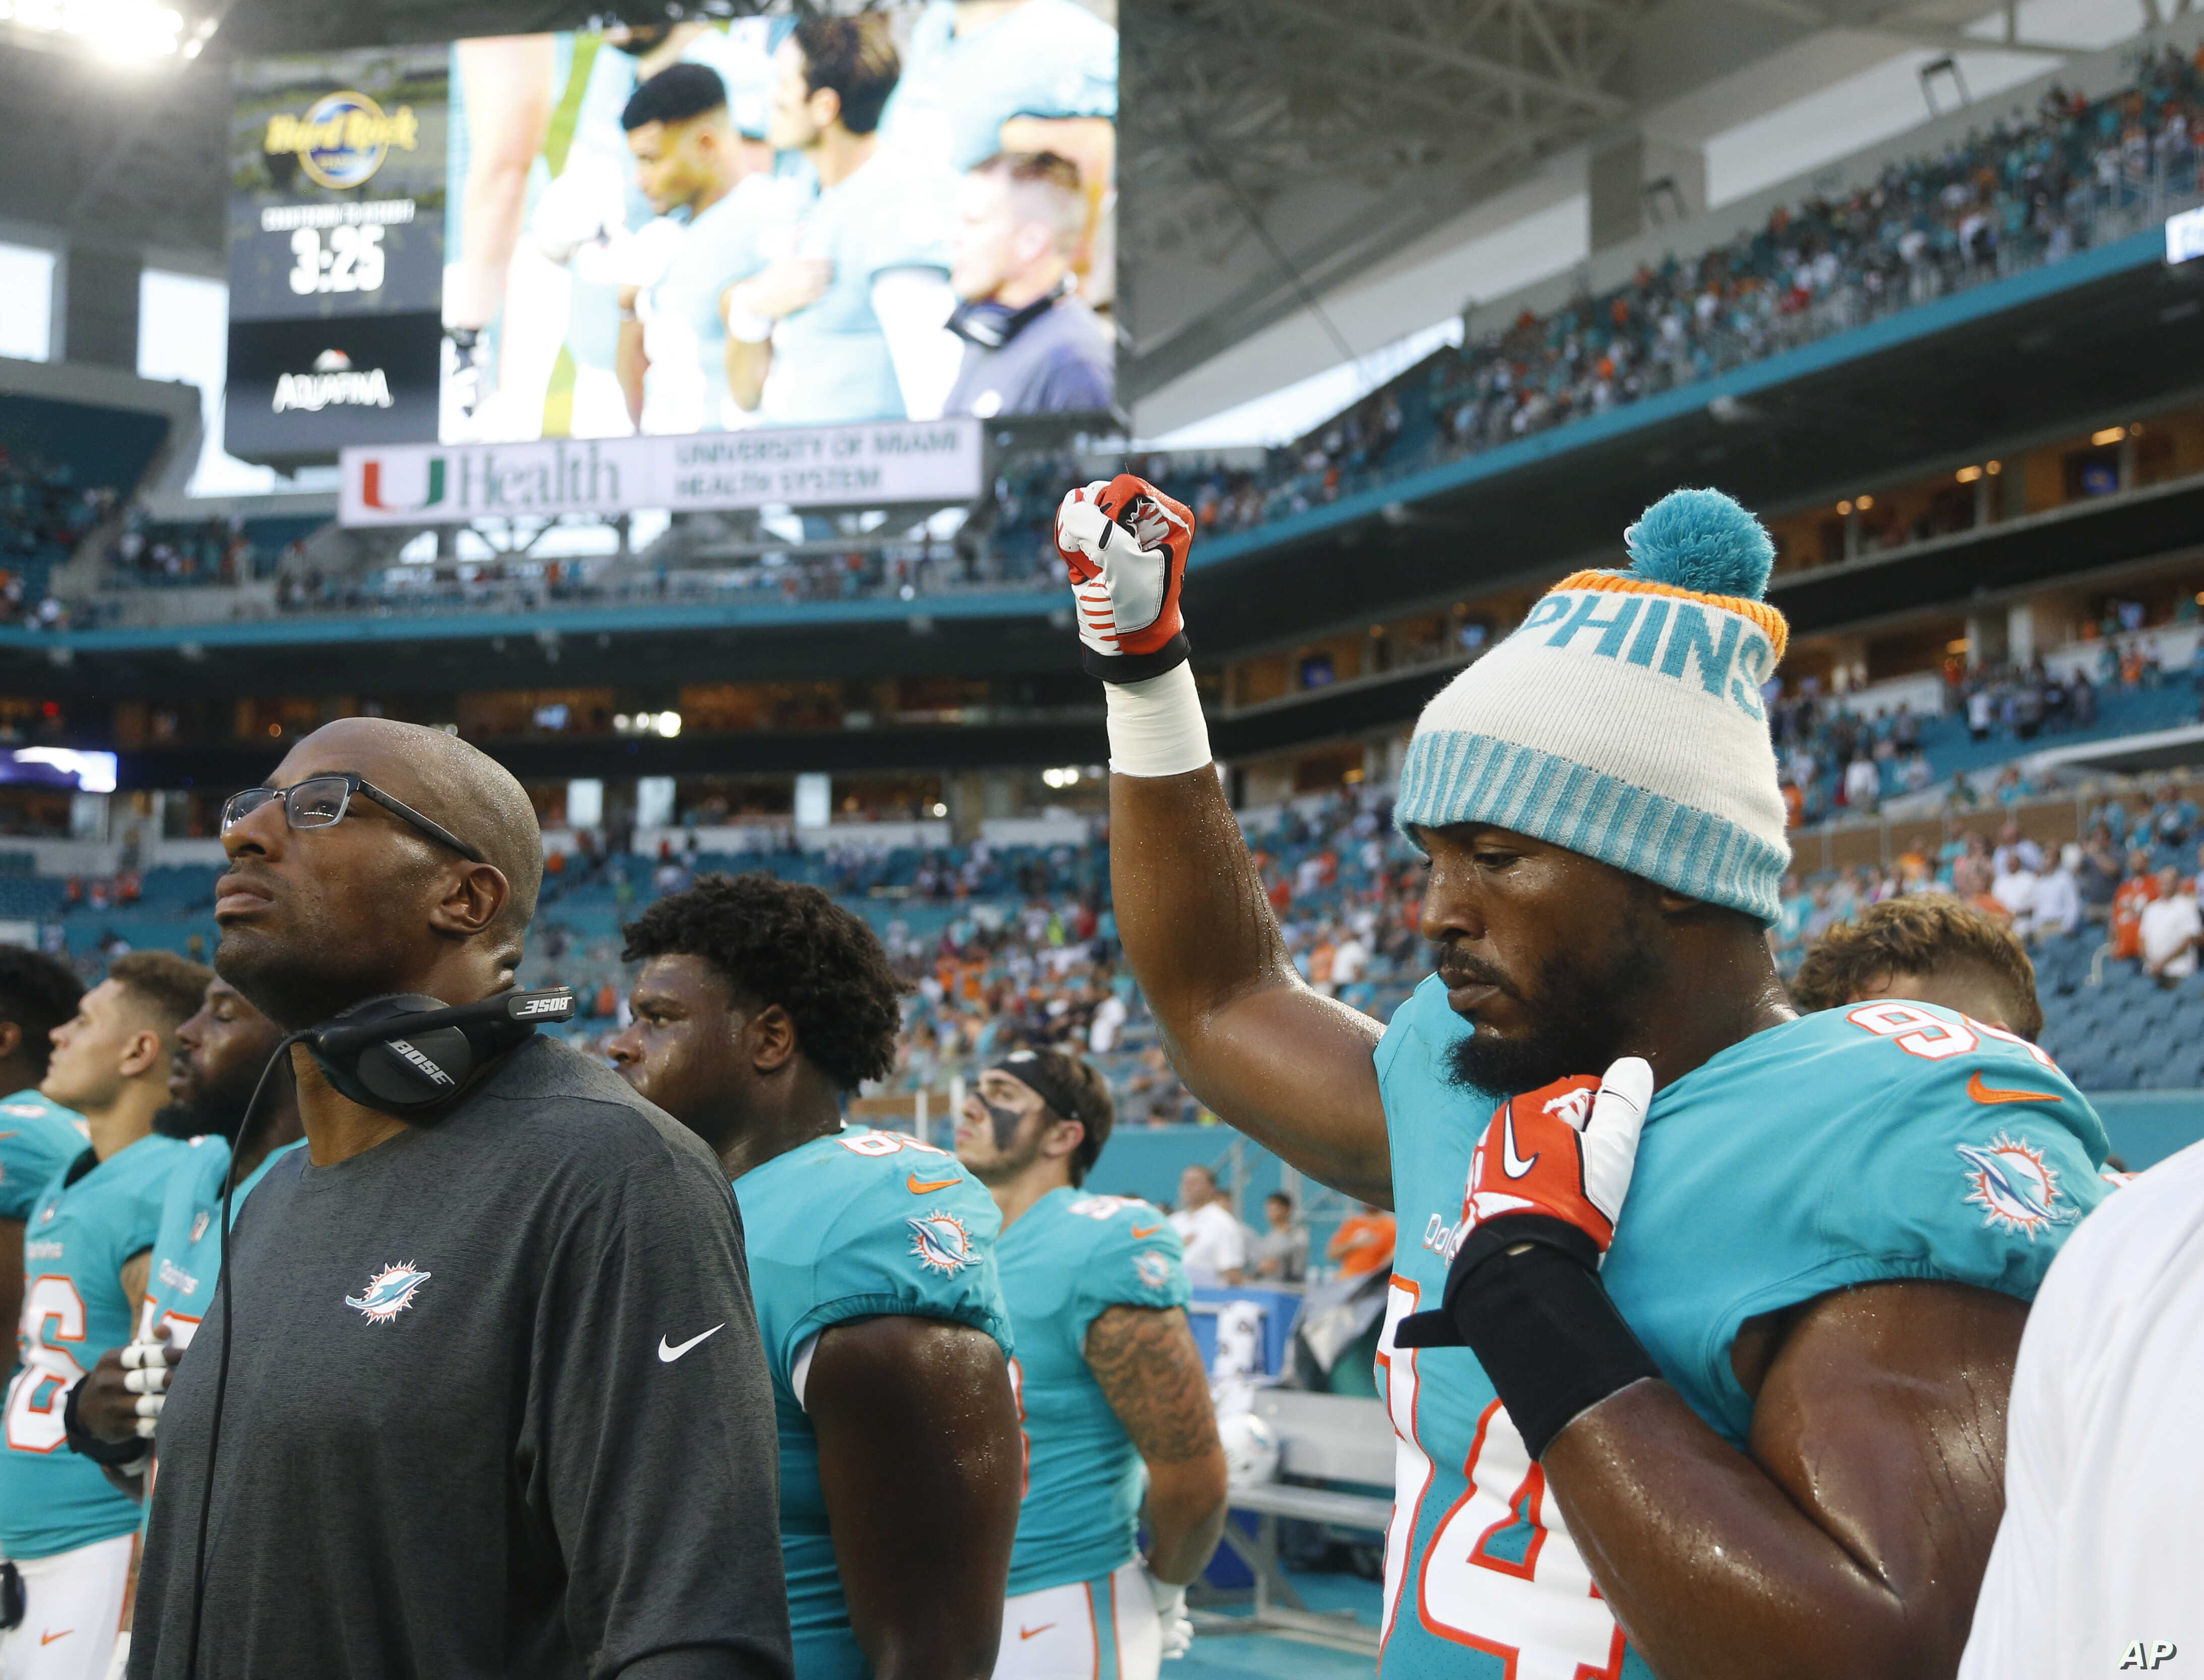 Former Nflers Call For End To Tackle >> Some Nfl Players Raise Awareness During Anthem Voice Of America